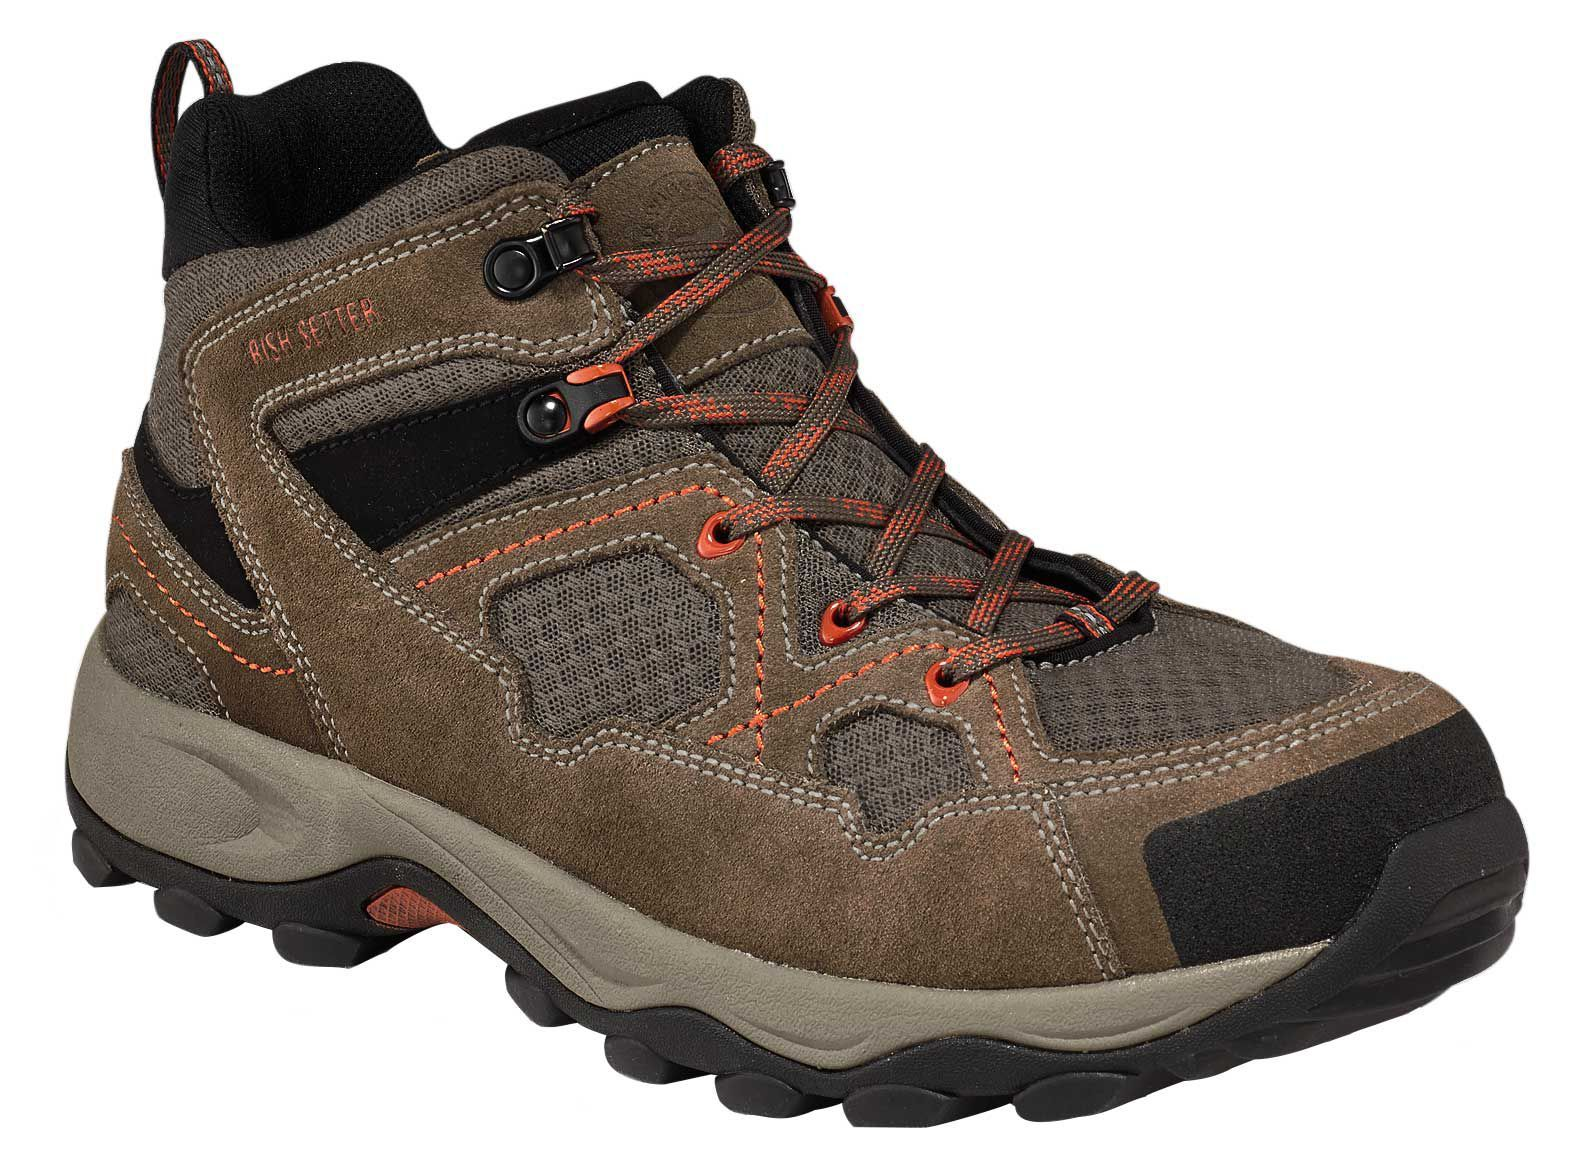 Irish Setter Men's Afton Steel Toe Work Boots, Size 14.0